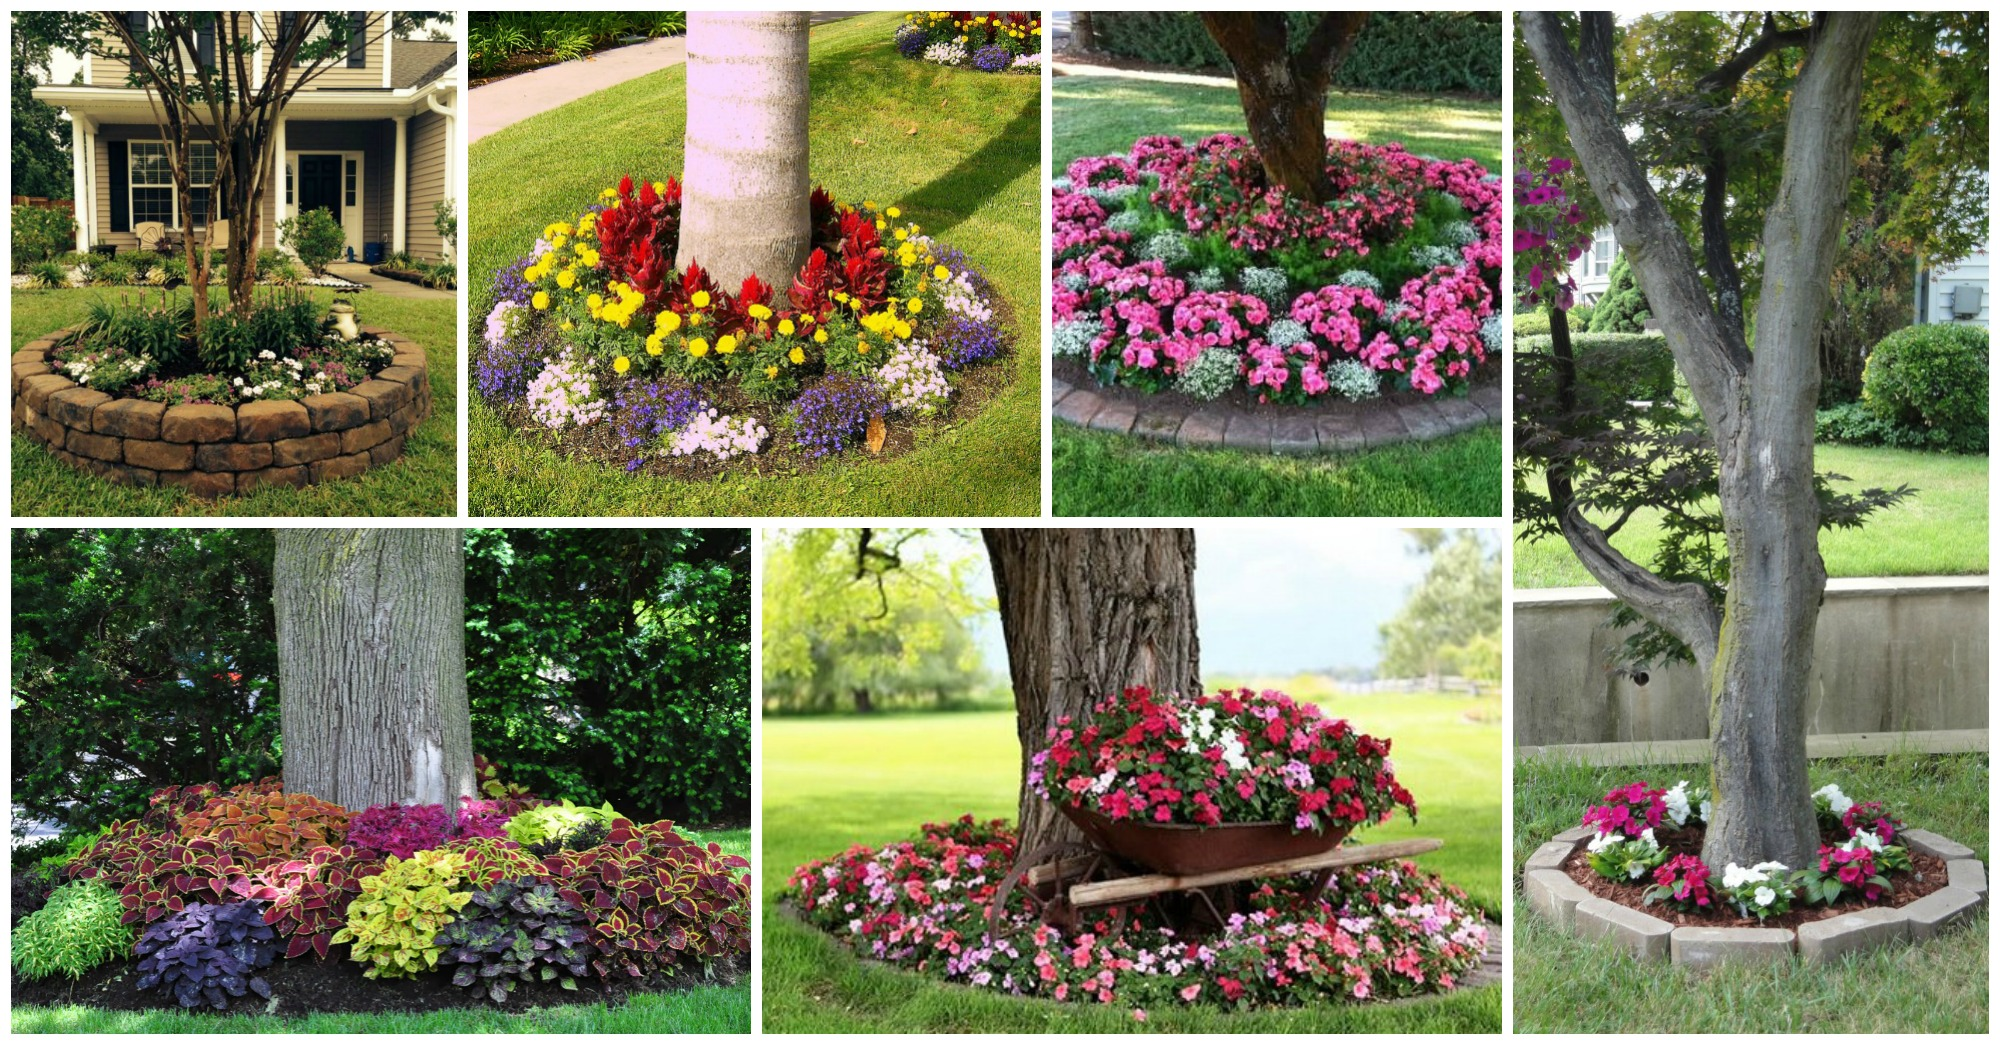 15 beautiful ideas for decorating the landscape around for Landscaping ideas around trees pictures